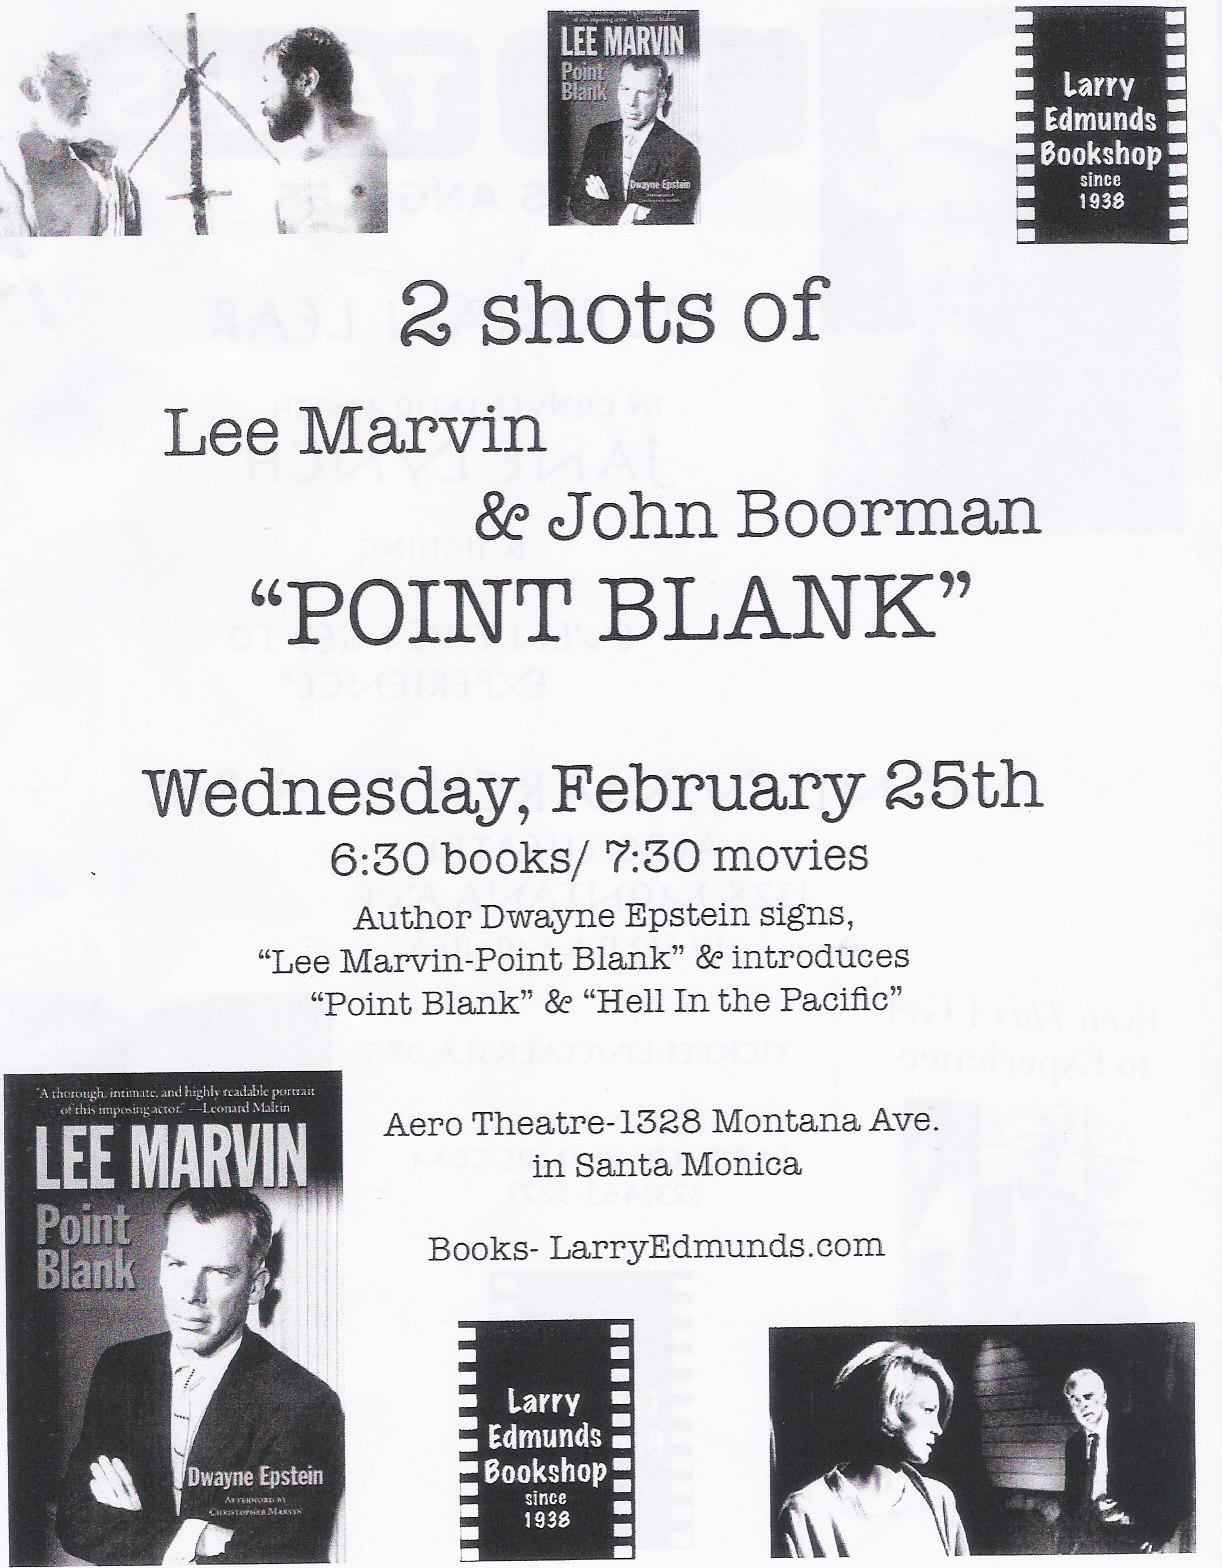 Flyer done up by Larry Edmunds' for last night's screening.